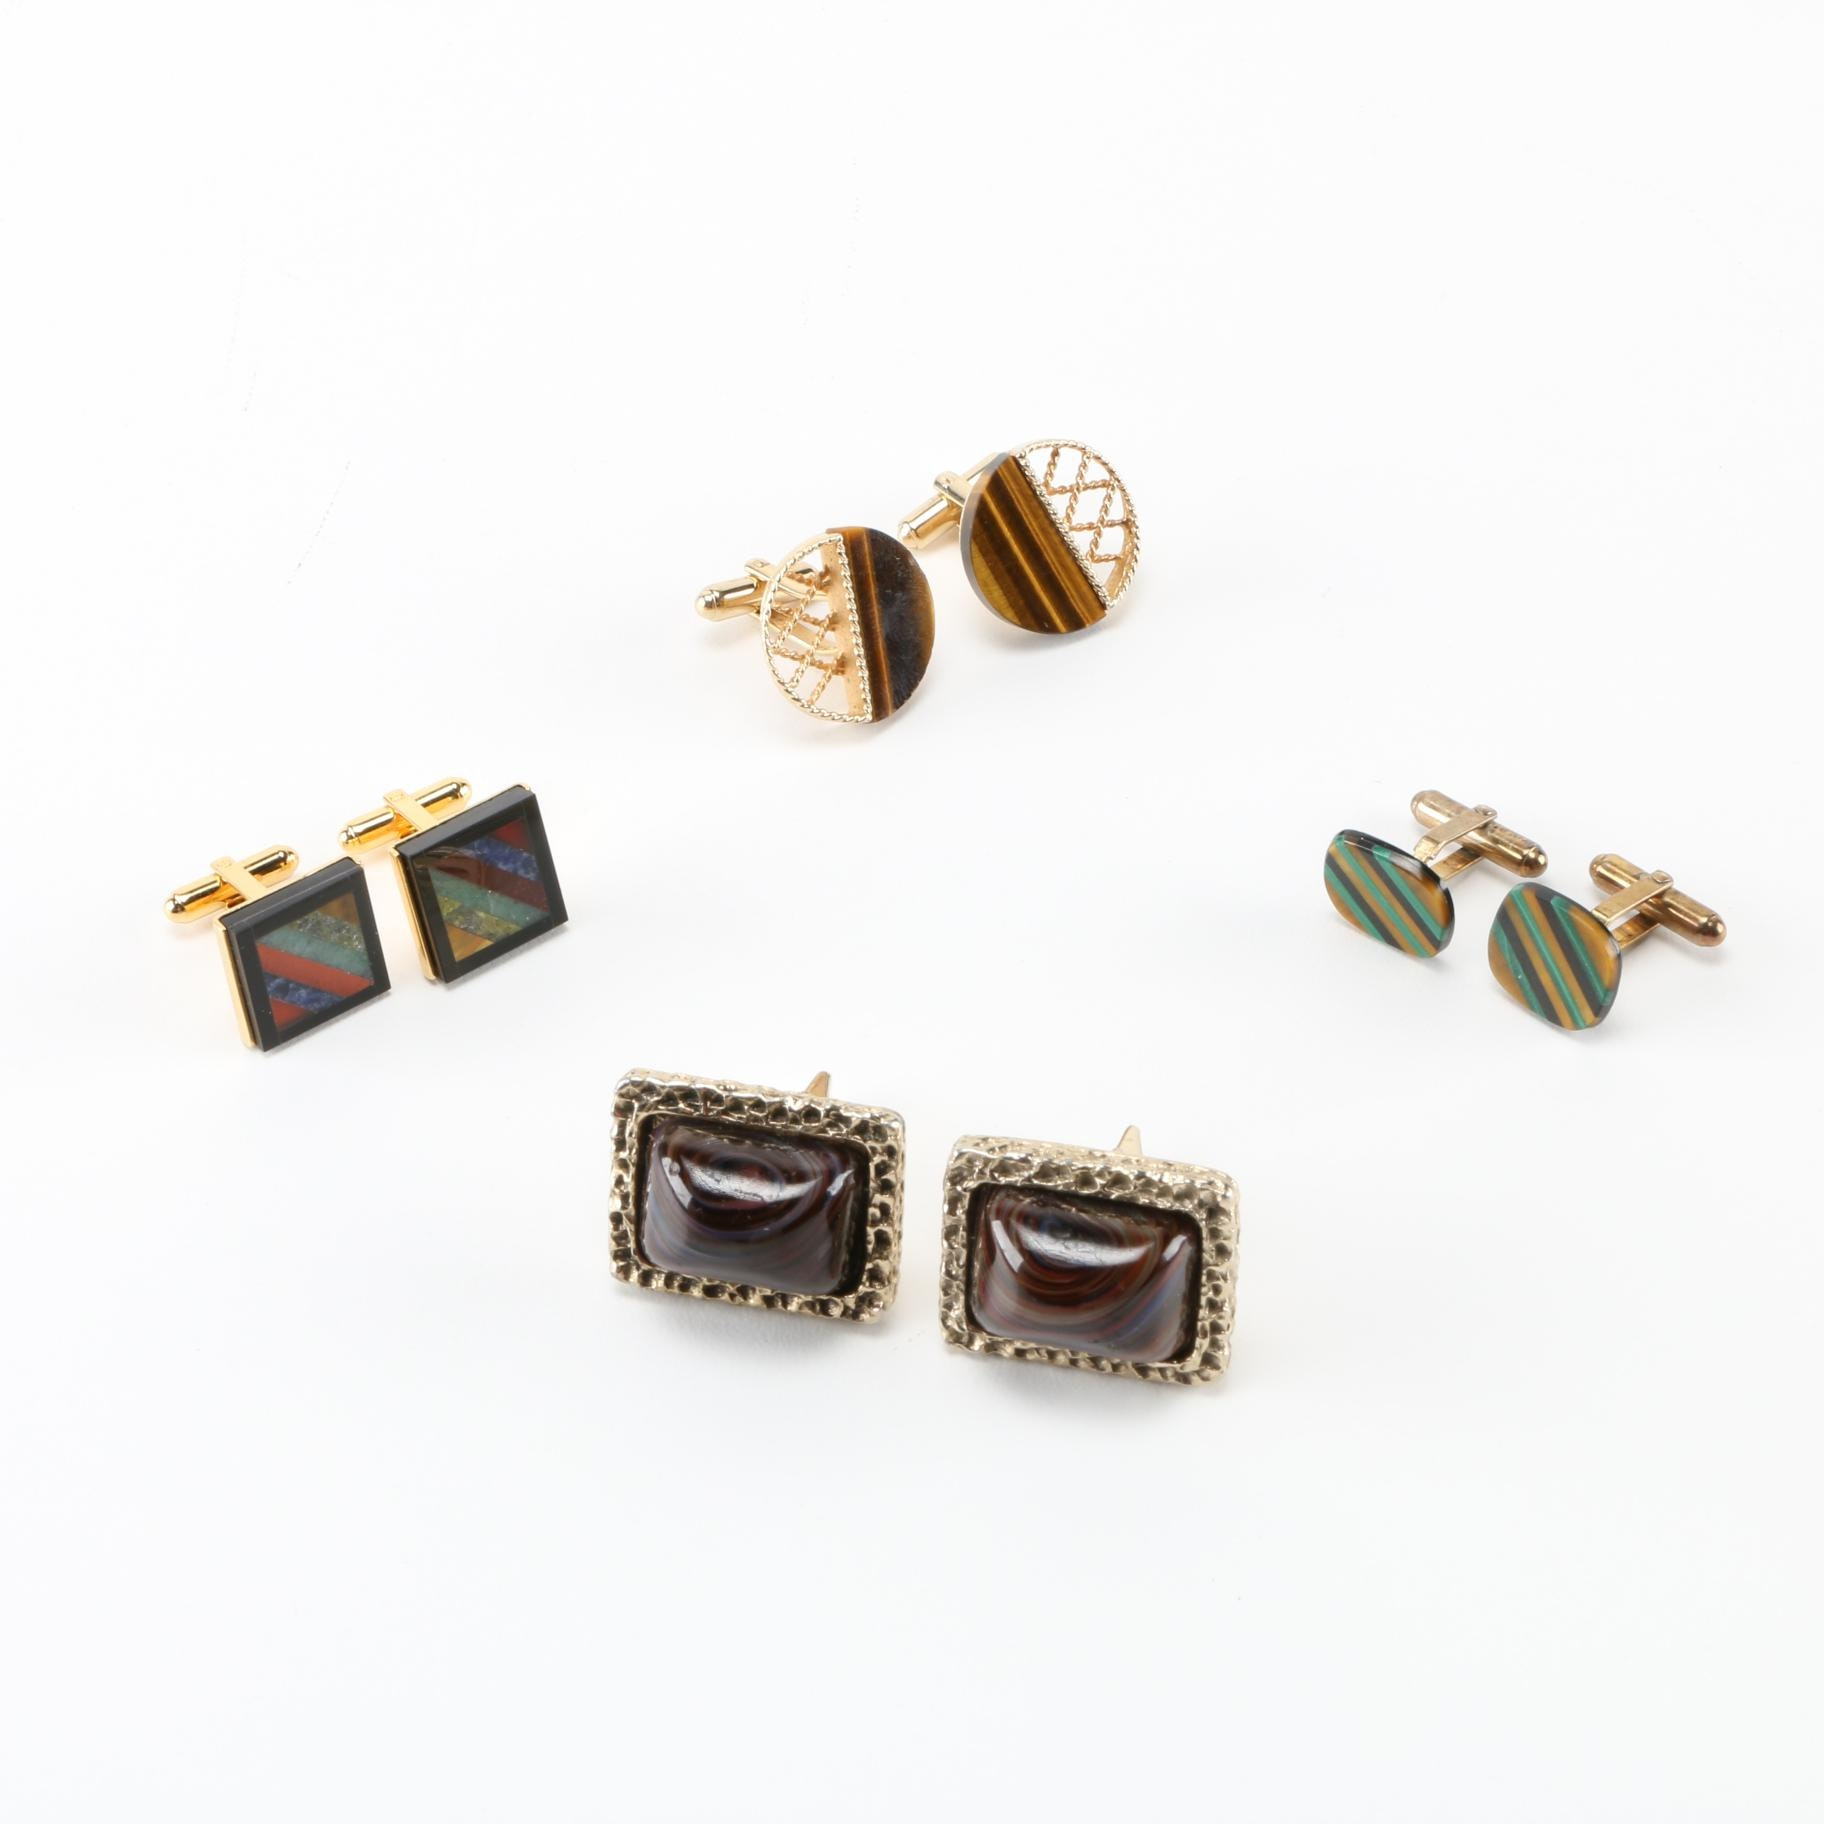 Assortment of Gold Tone Cufflinks With Stones